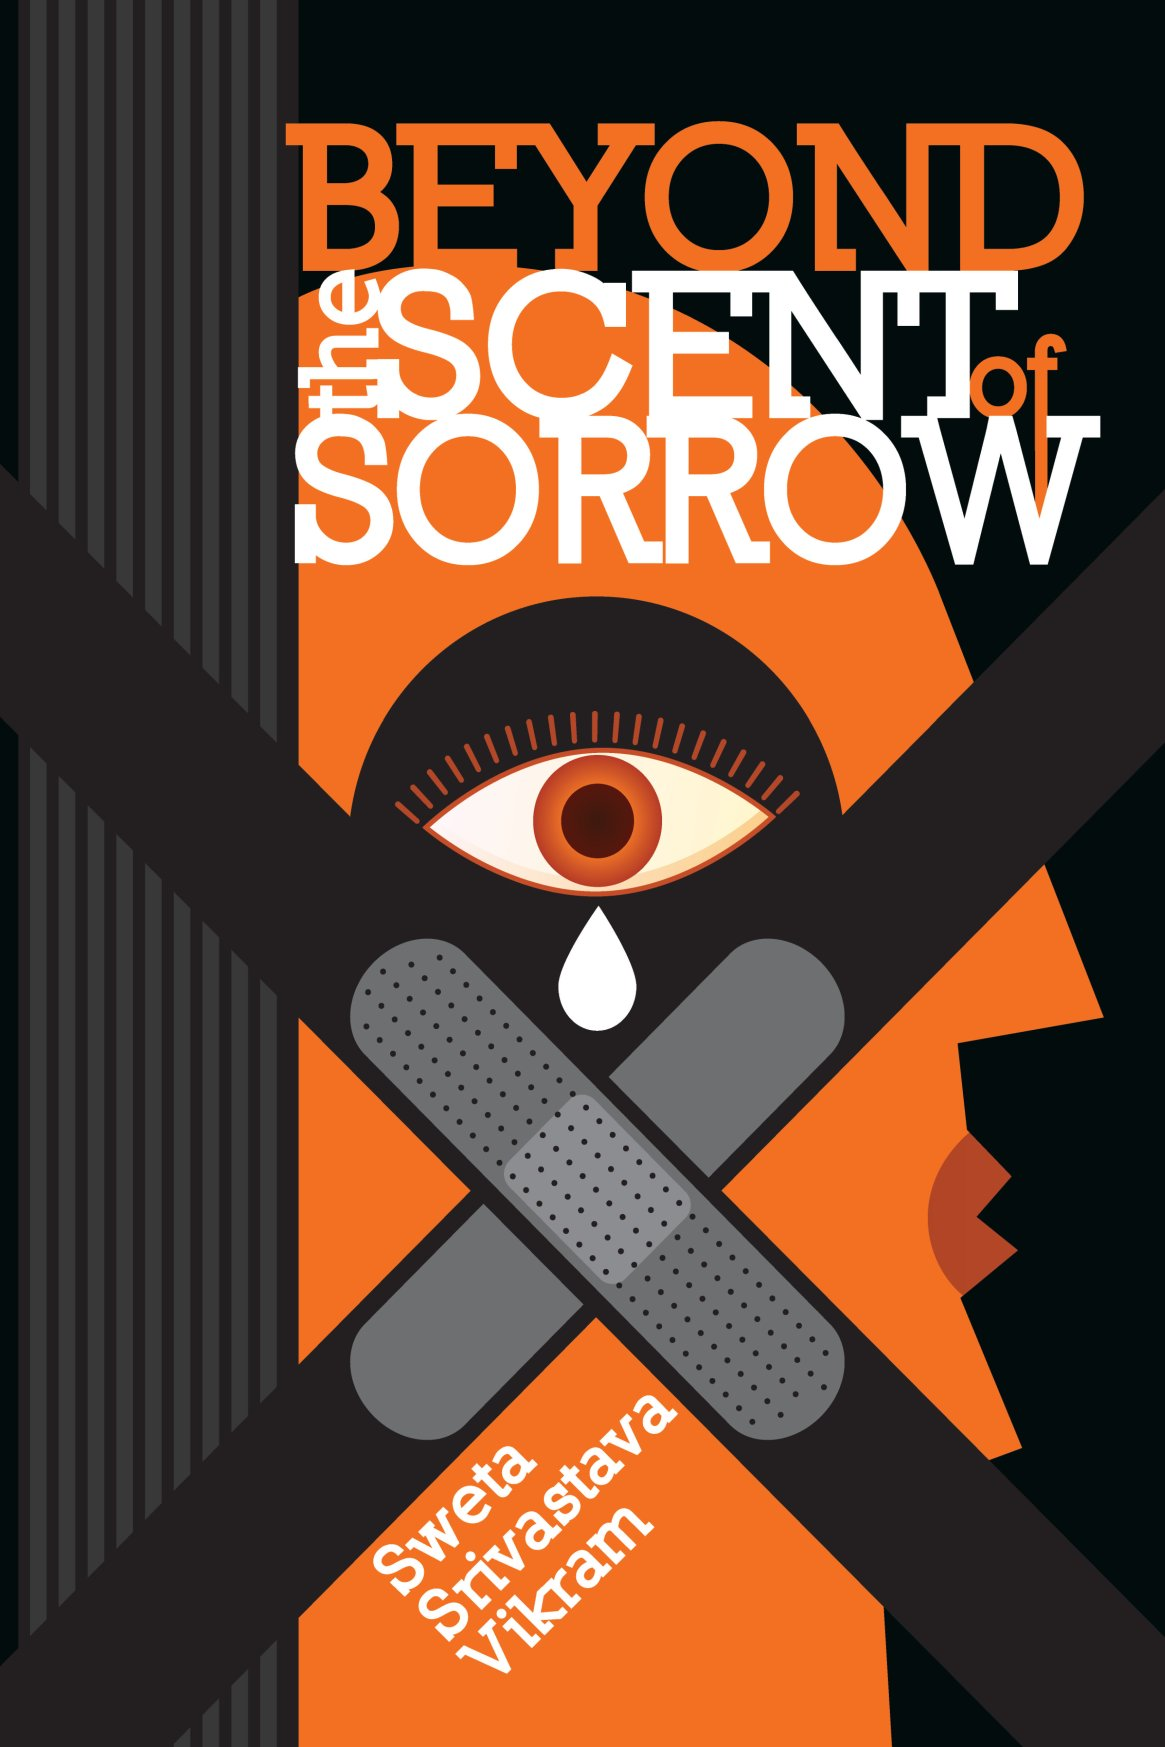 Beyond the Scent of Sorrow 978-1-61599-097-9